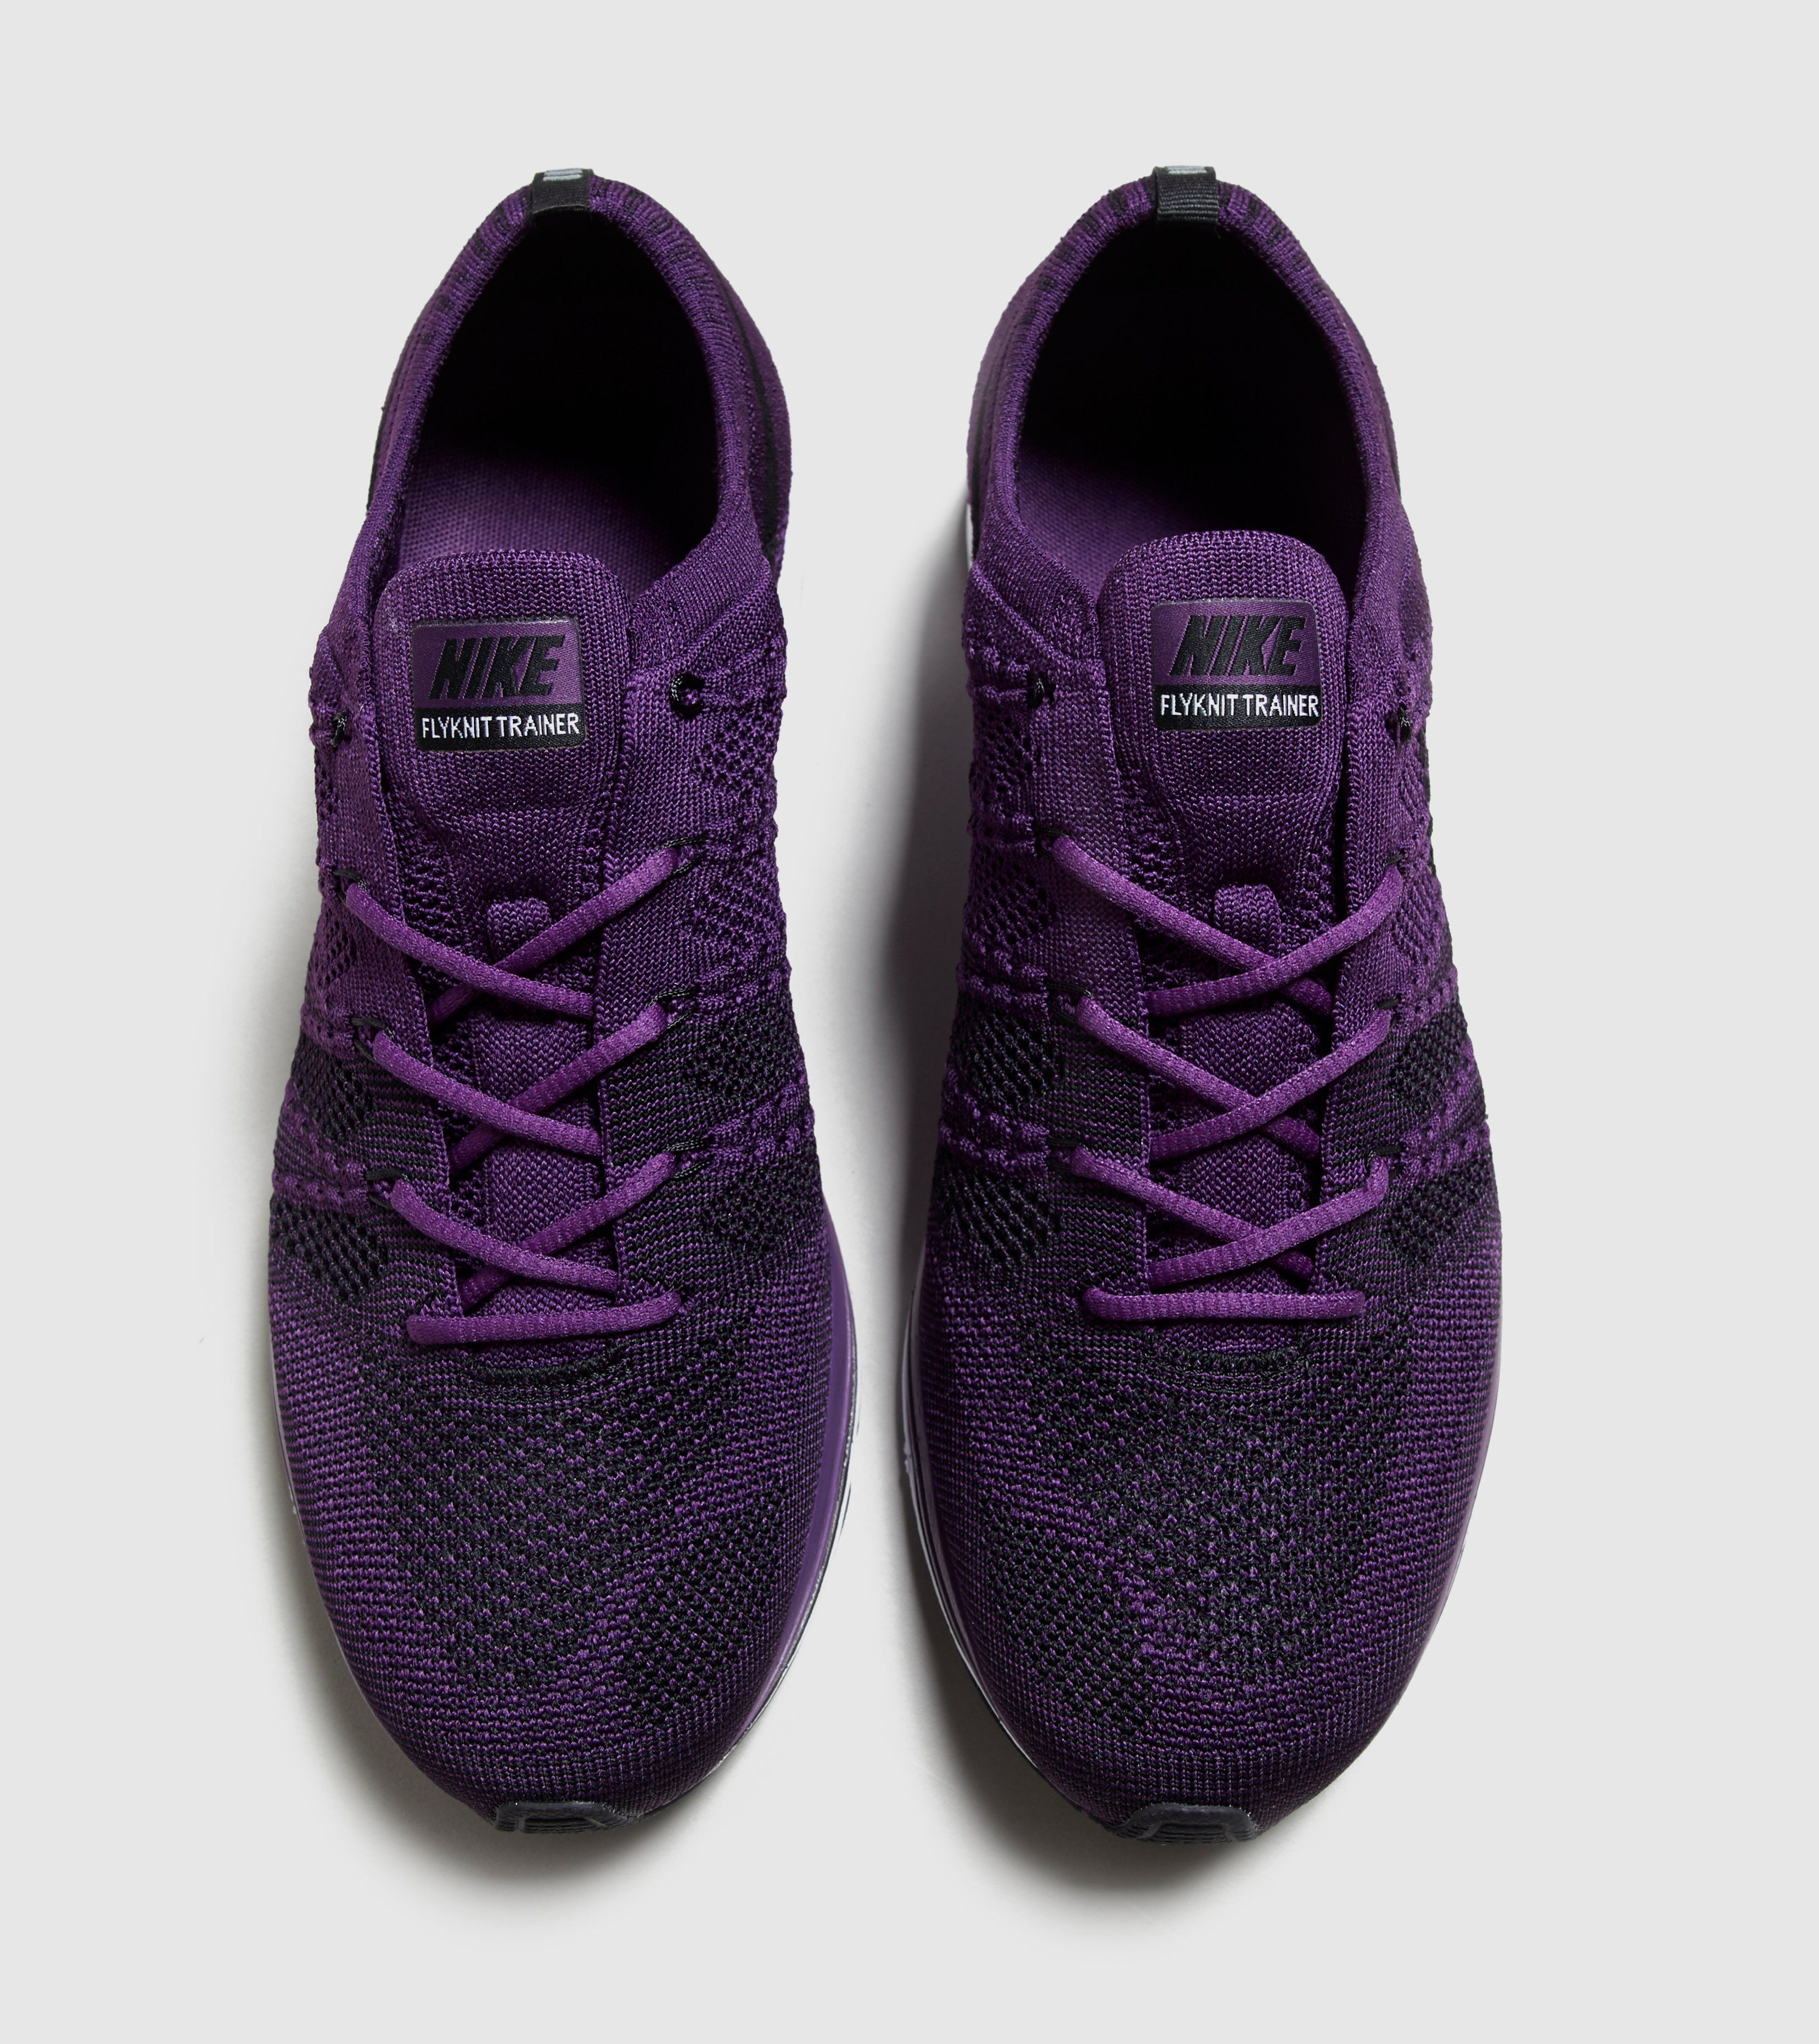 497d76808348 promo code for flyknit trainer white for sale va 7a43c 6adeb